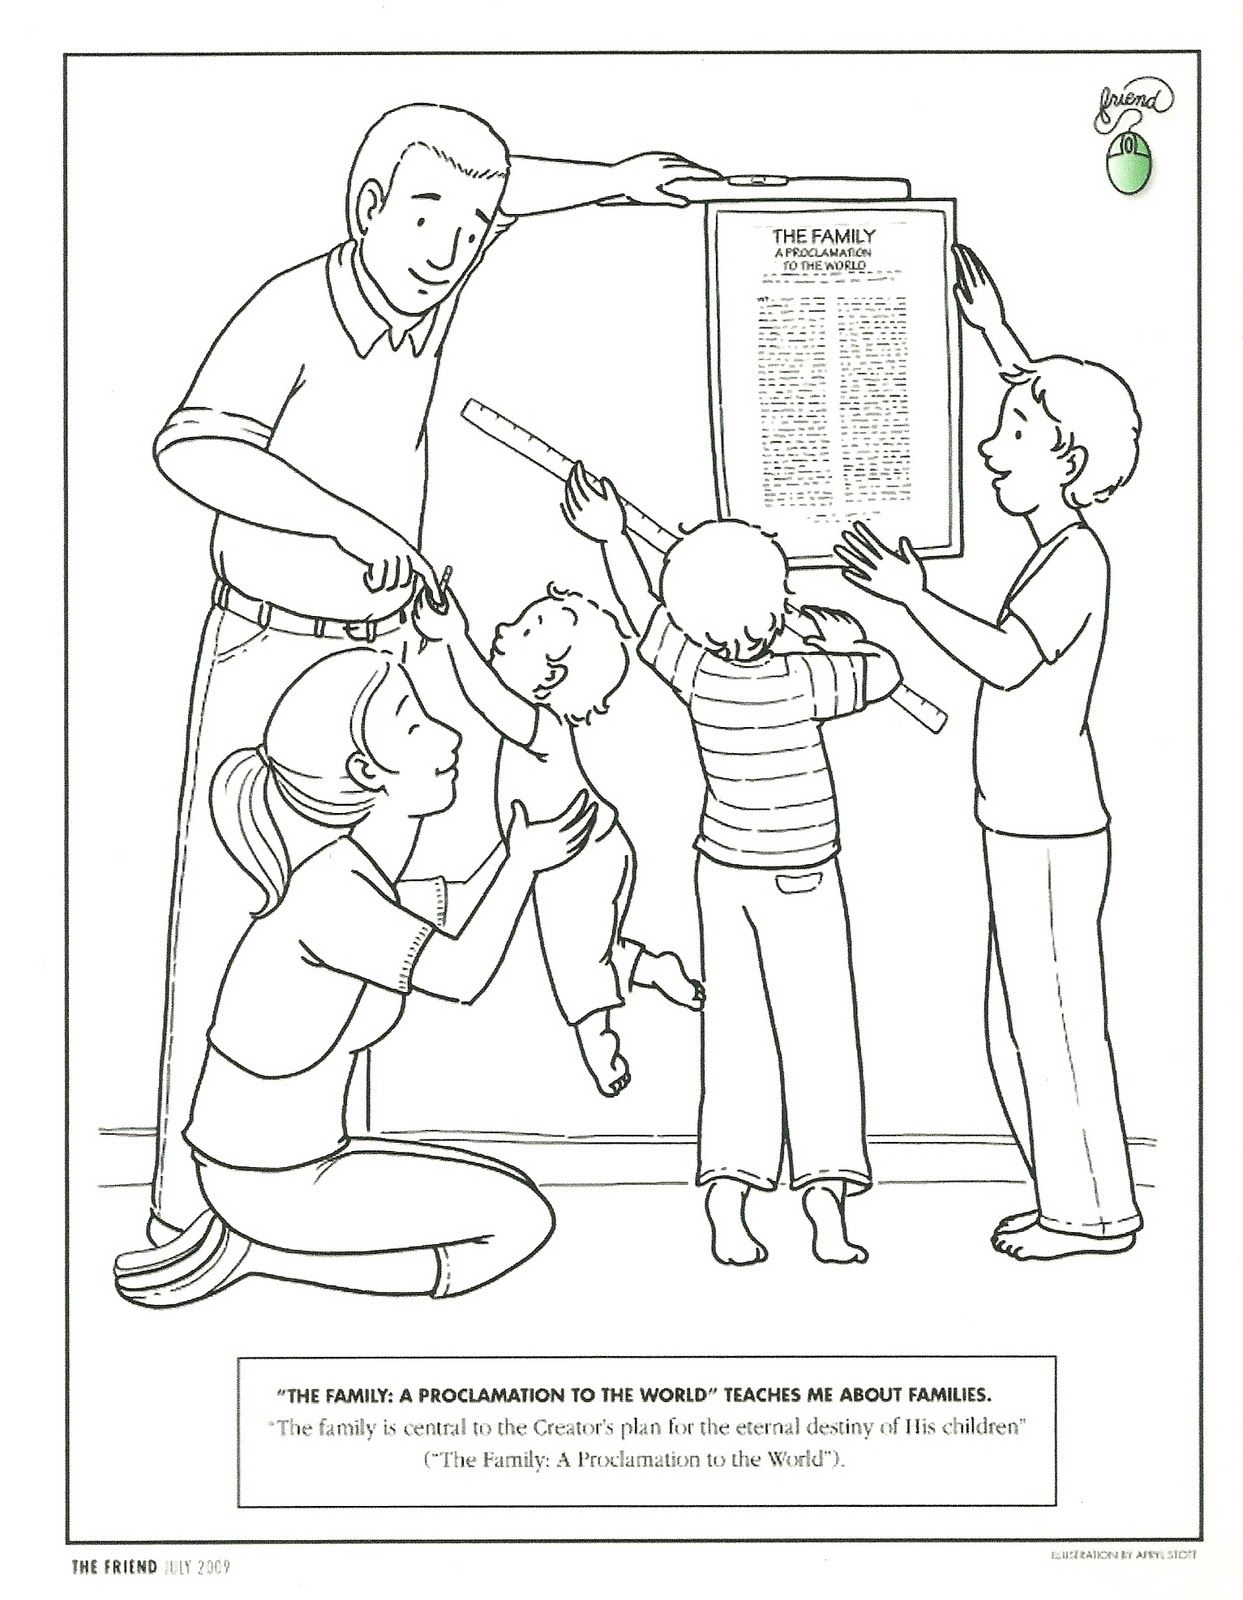 Primary 3 Manual Lesson 39 Showing Love for Our Parents